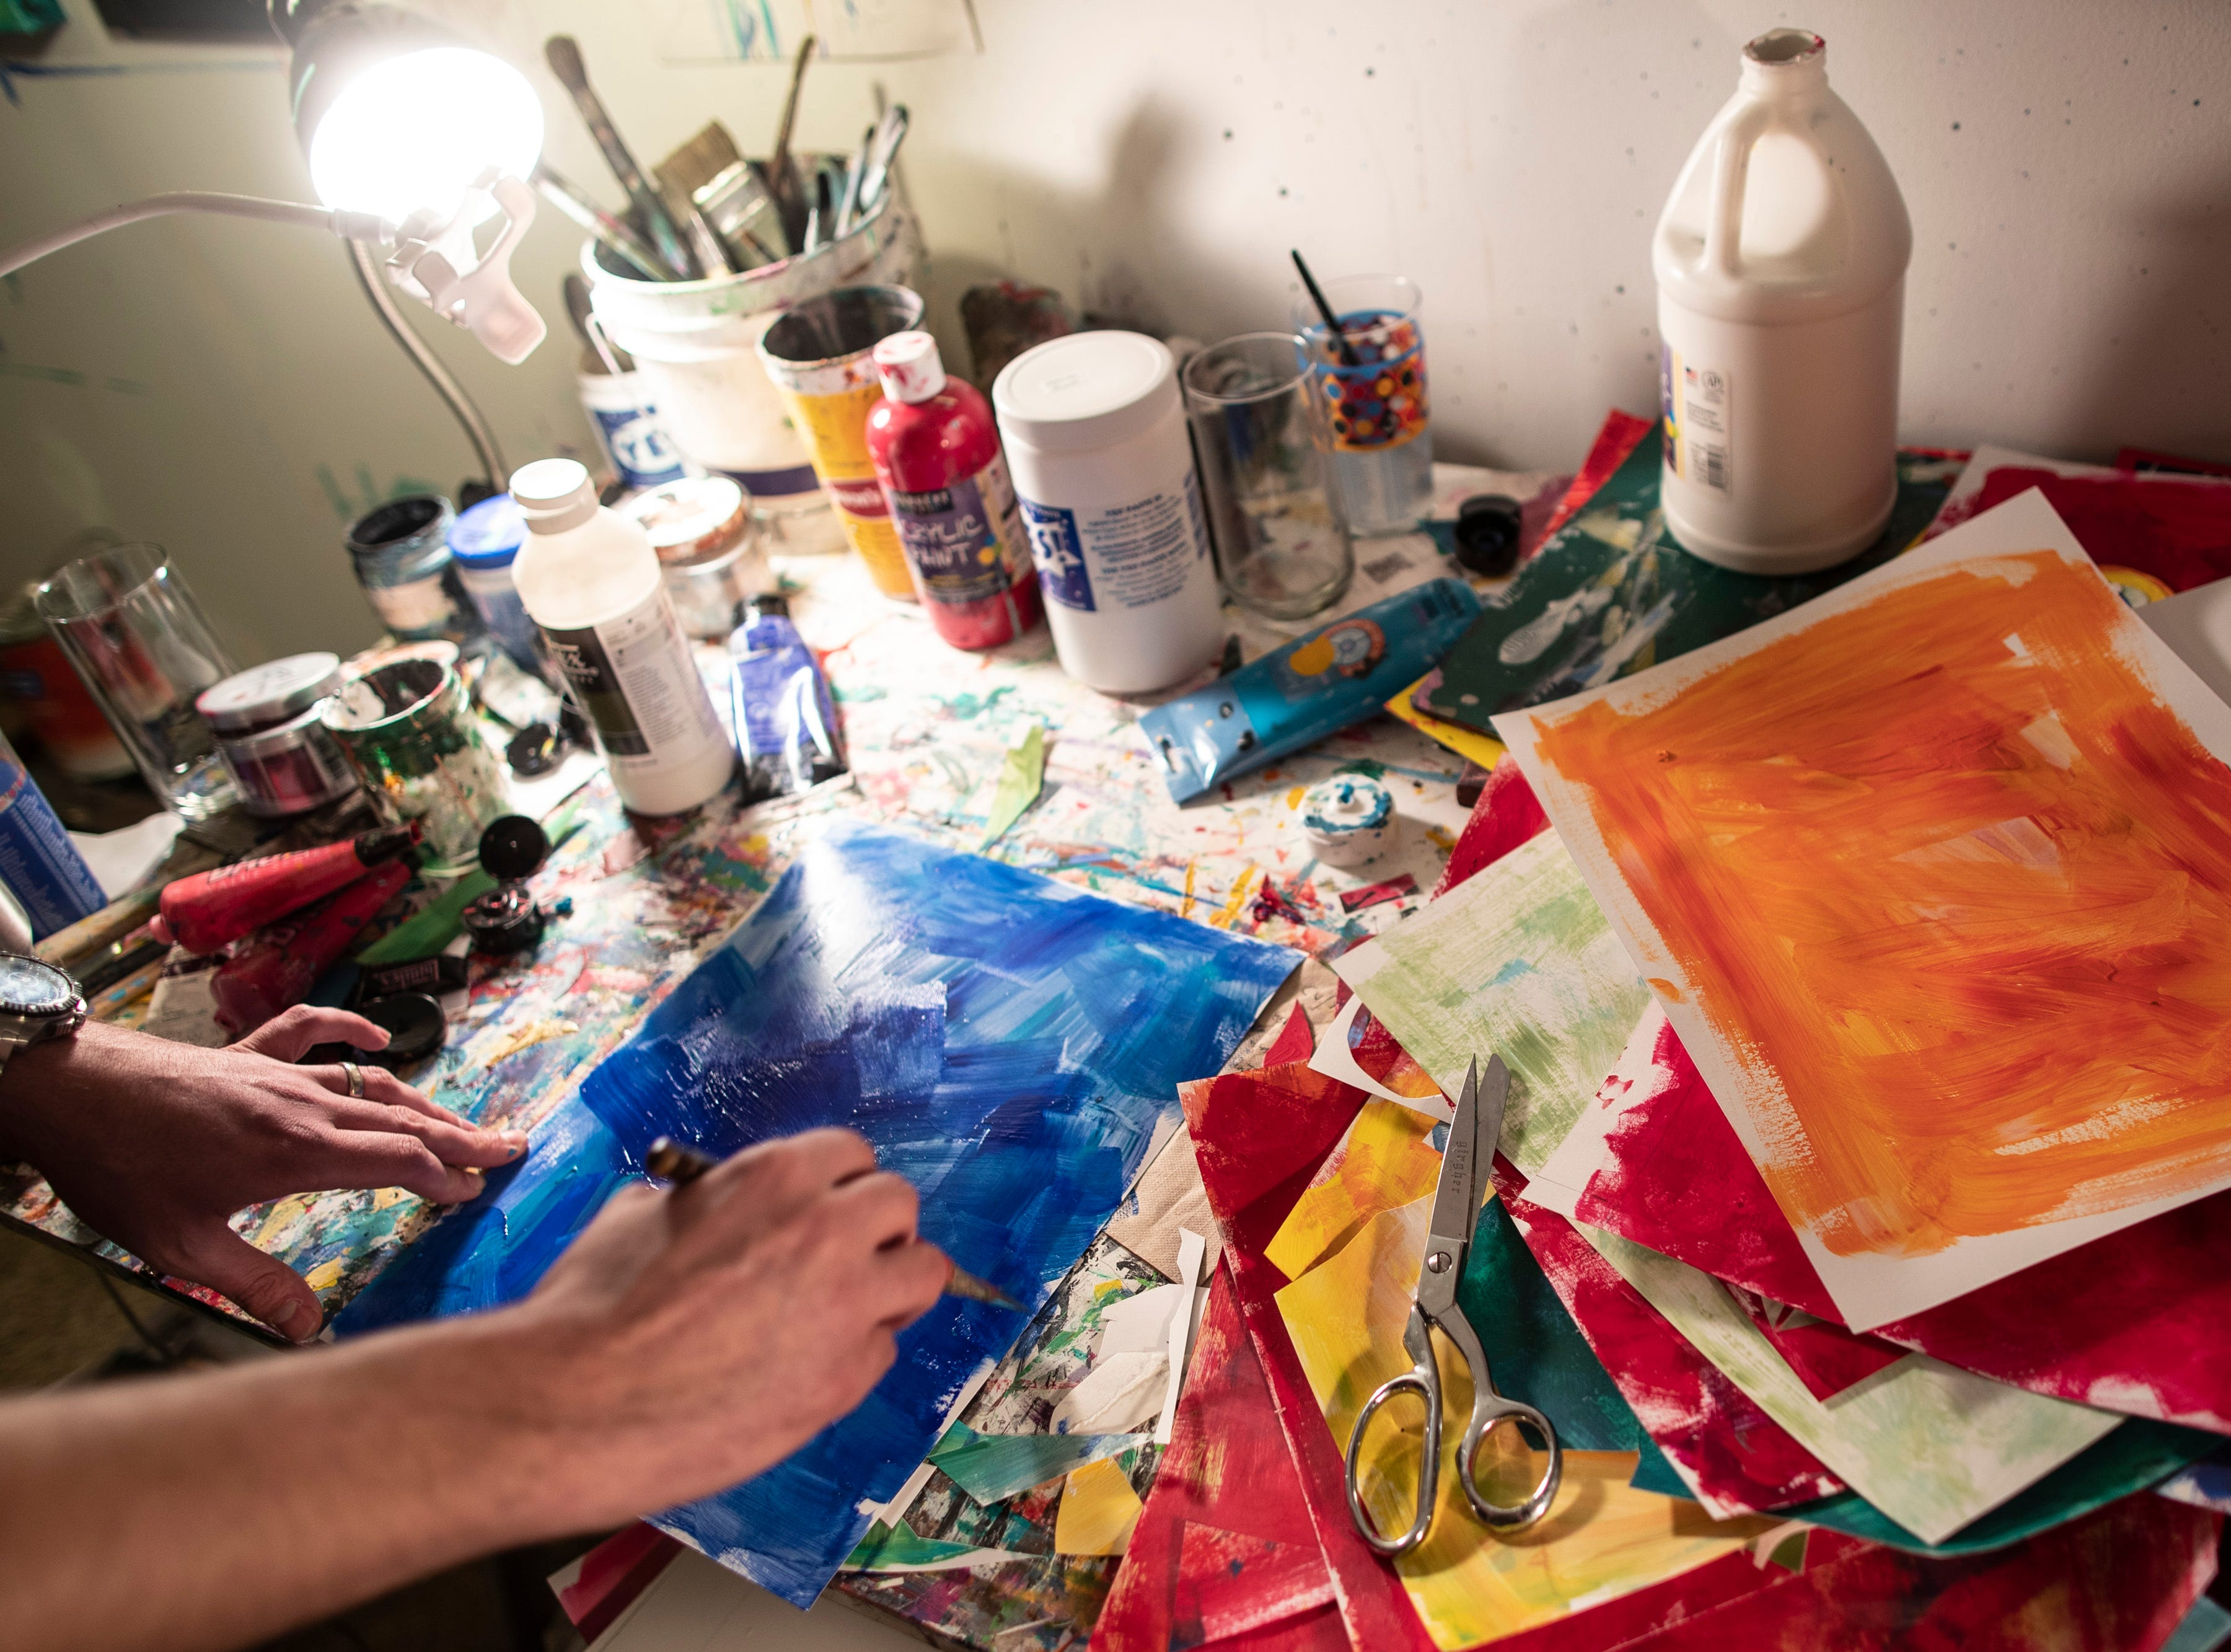 Louisville artist Andy Perez works on painting collage pieces in his home studio. March 11, 2019